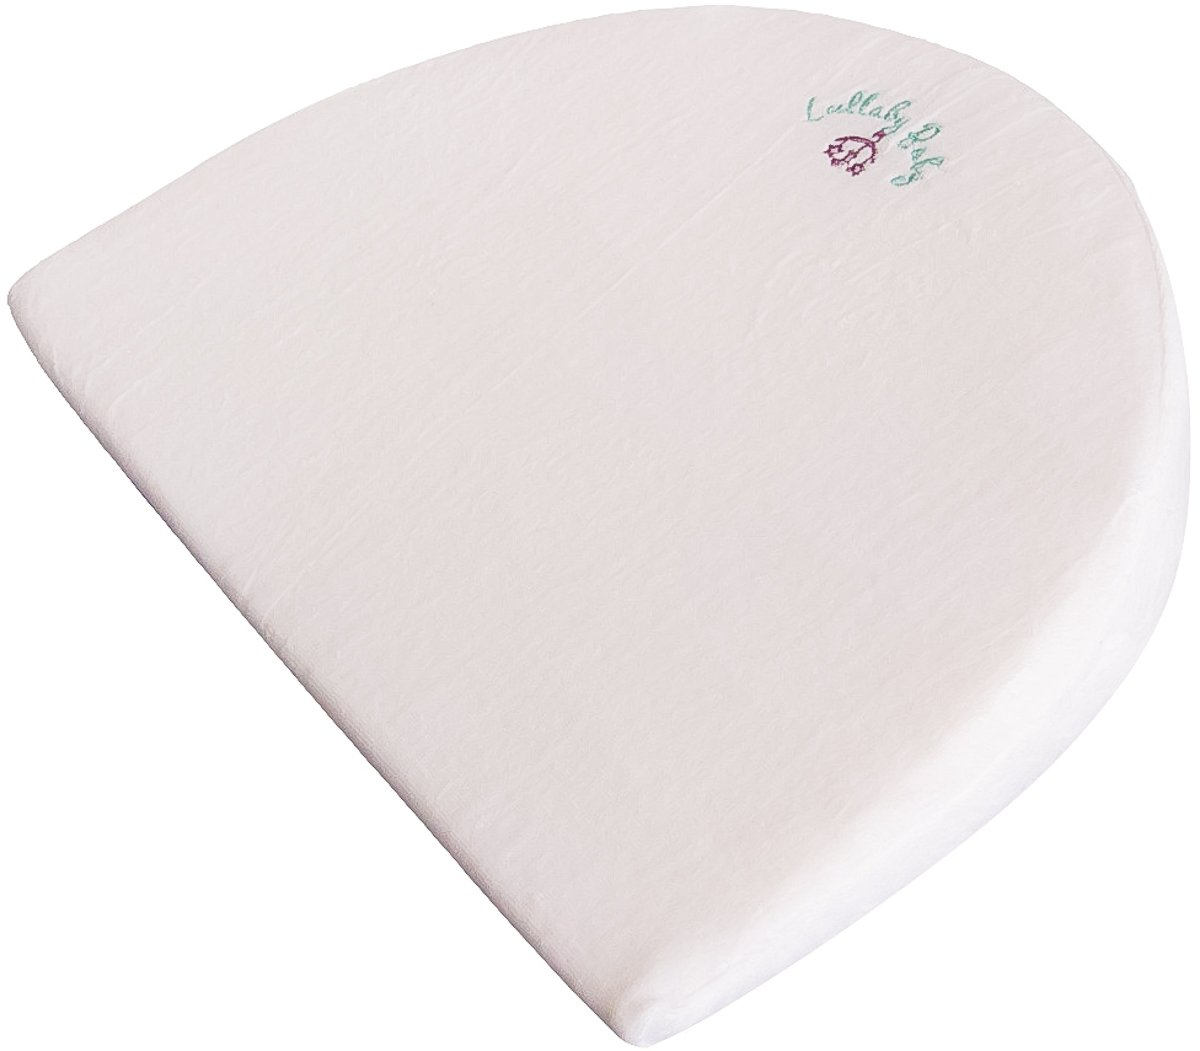 Lullaby Baby CPSC Lab Approved Large Wedge Pillow Infant Newborn Waterproof Large Size Memory Foam Foldable 12 Degree Incline Sleeper Acid Reflux For Bassinet Happy Home Ideas HHI-LB-LP-1CV